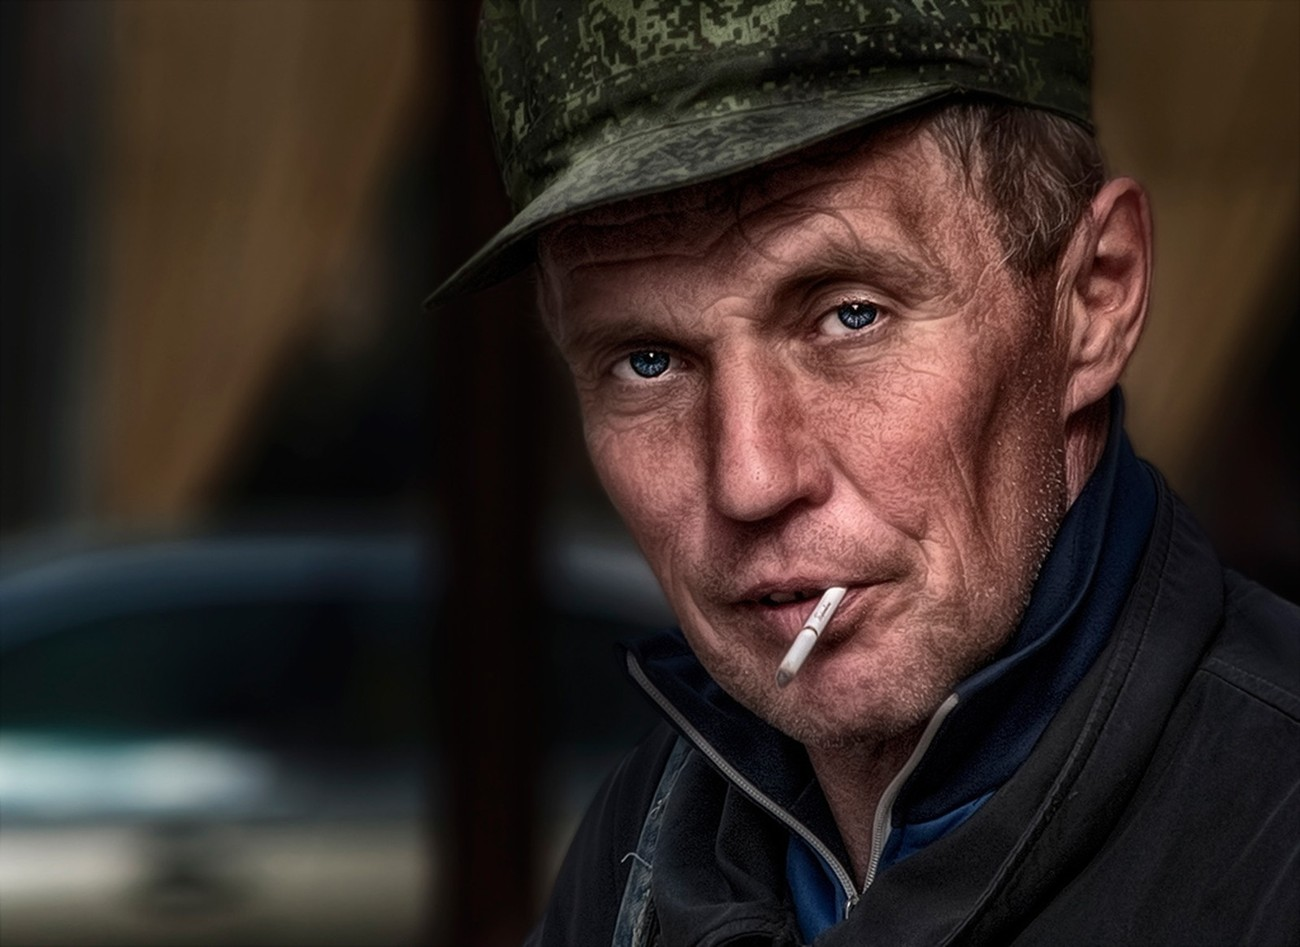 47+ Jaw Dropping Portraits Of Men You Cannot Miss